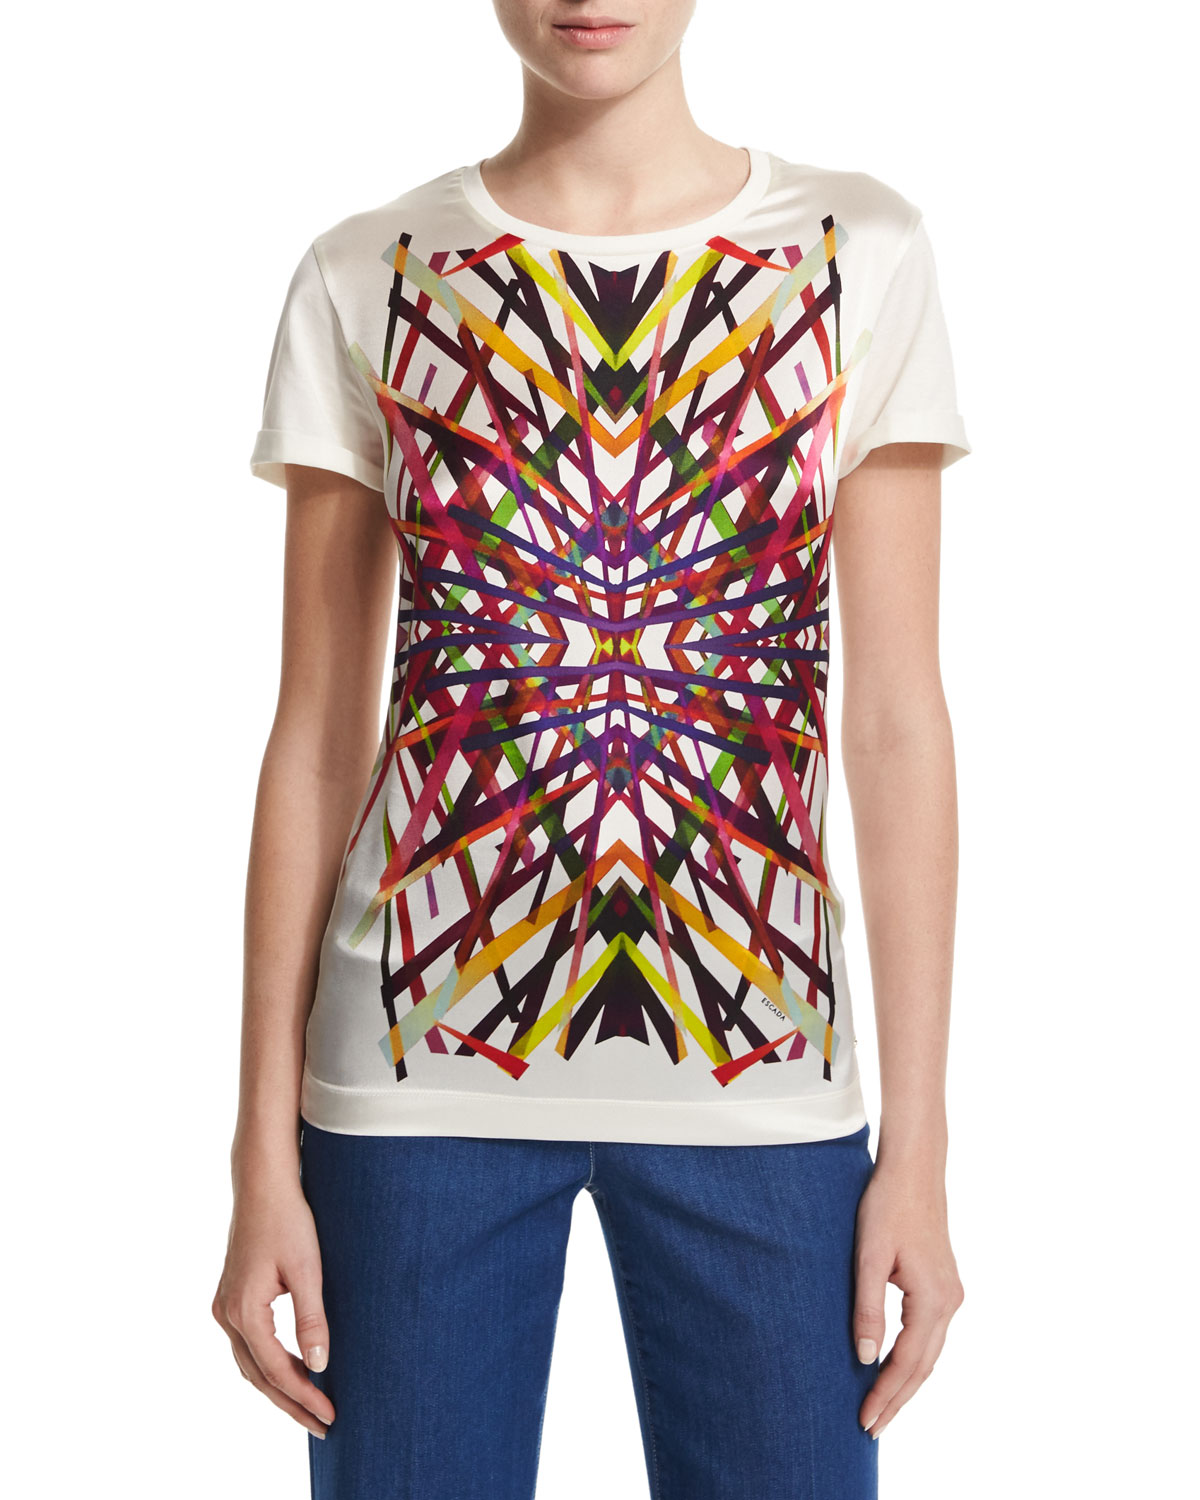 L.A. Lights Printed Tee, Off White/Multi, Size: LARGE, Off White Multi - Escada